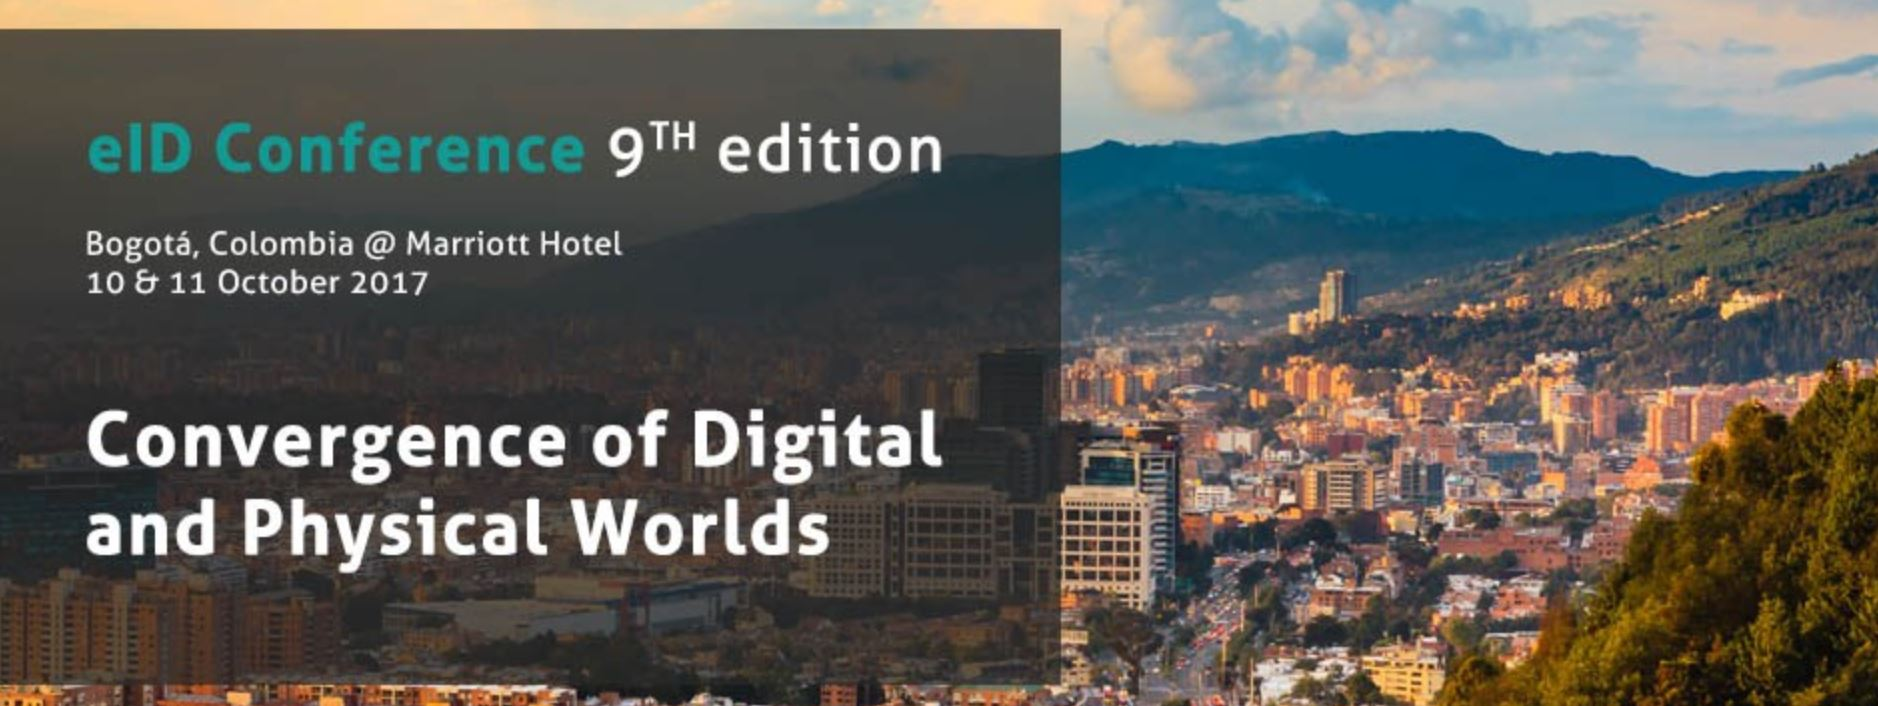 eID Conference, 9th edition, Bogotá, Colombia